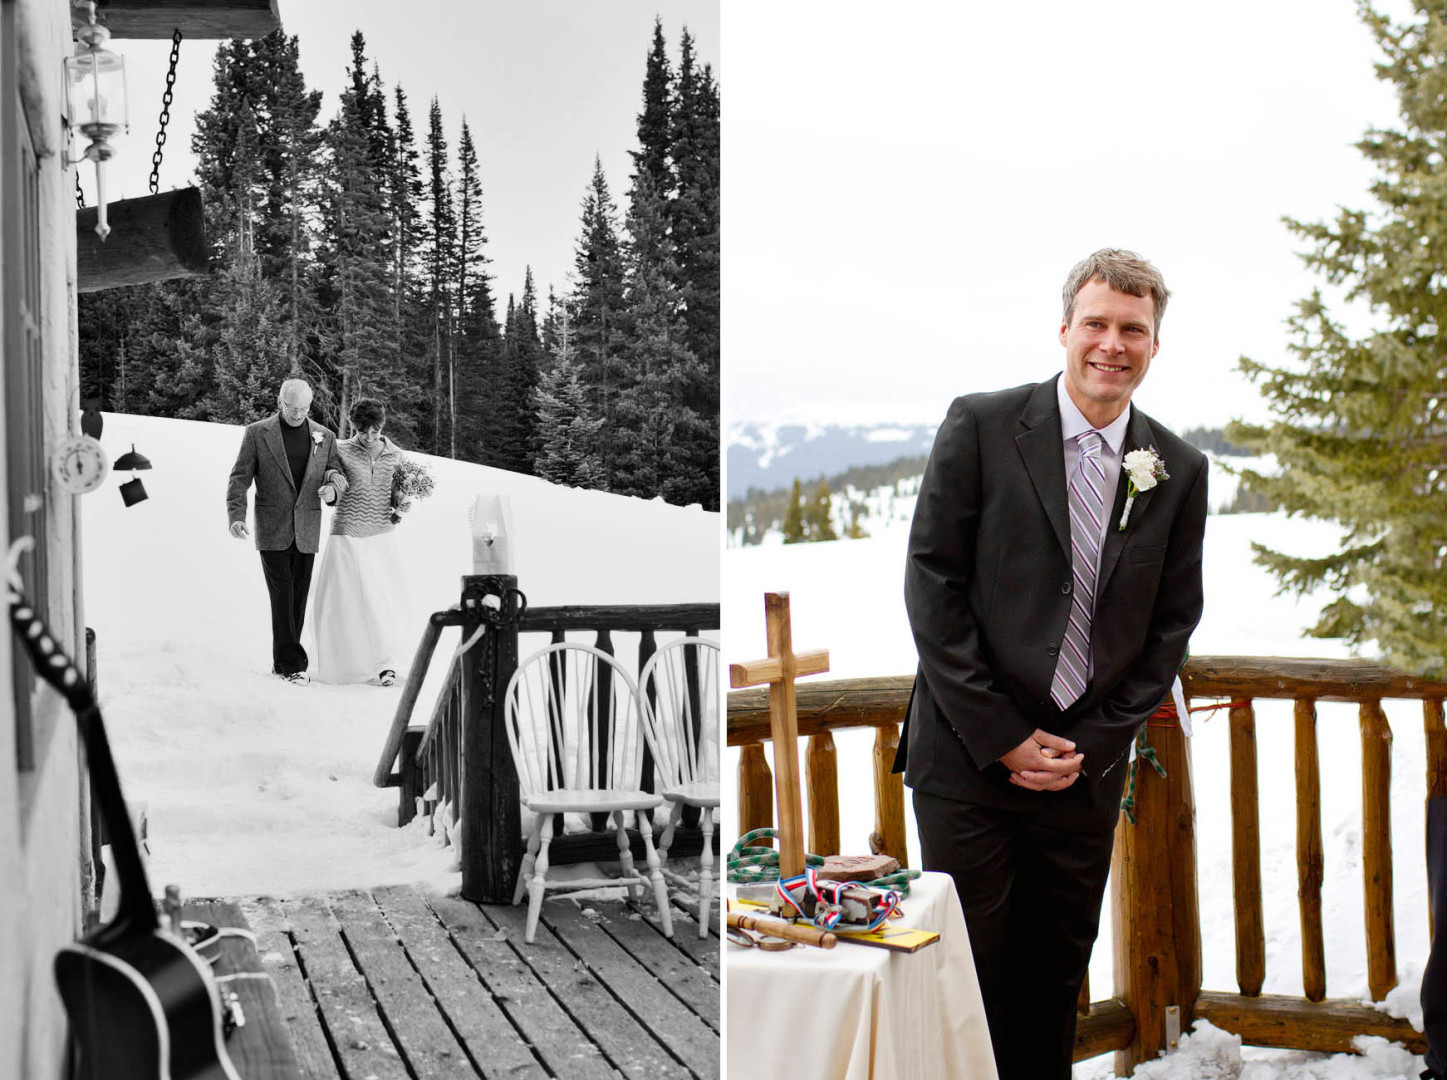 Shrine Mountain Wedding, Vail, Colorado Photographer,InternationalPhotographer, Desiree Mostad, bryllup fotograf, Rivetsand Roses,Scandinavian Wedding, Snowy Spring